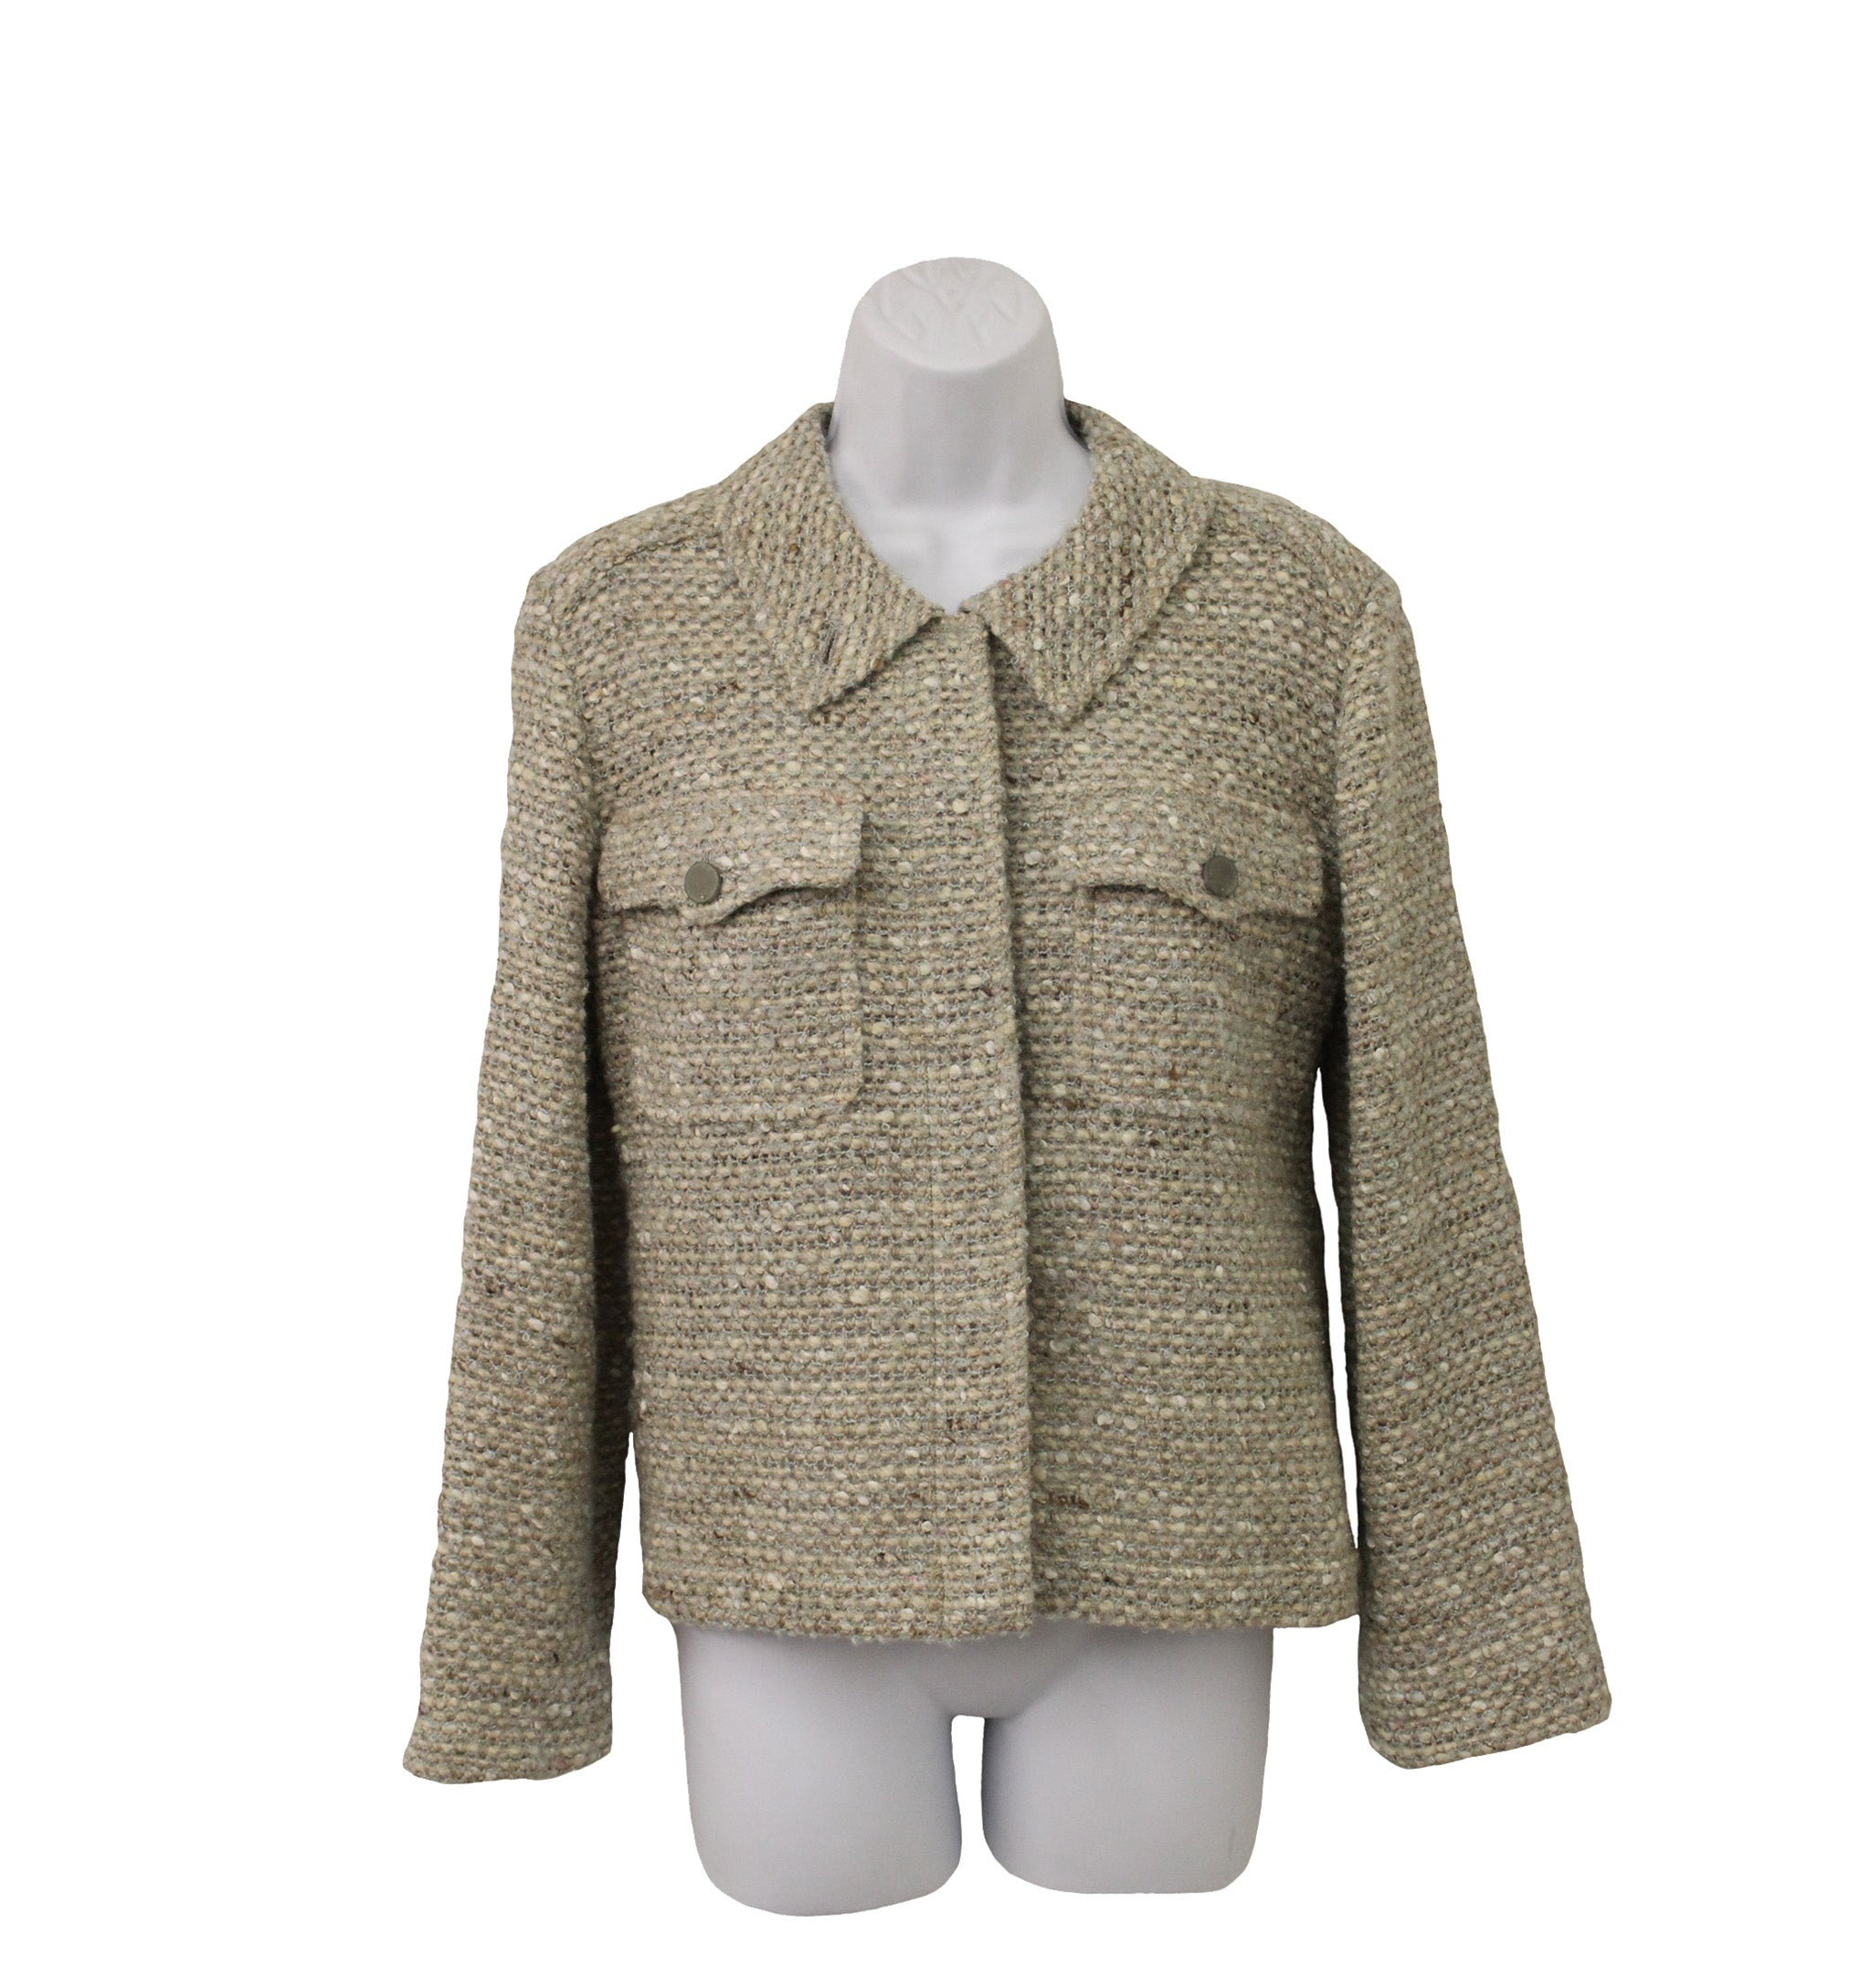 c523d923205  Sold  Chanel Beige Green Tweed Jacket (Size 36) – Encore Consignment